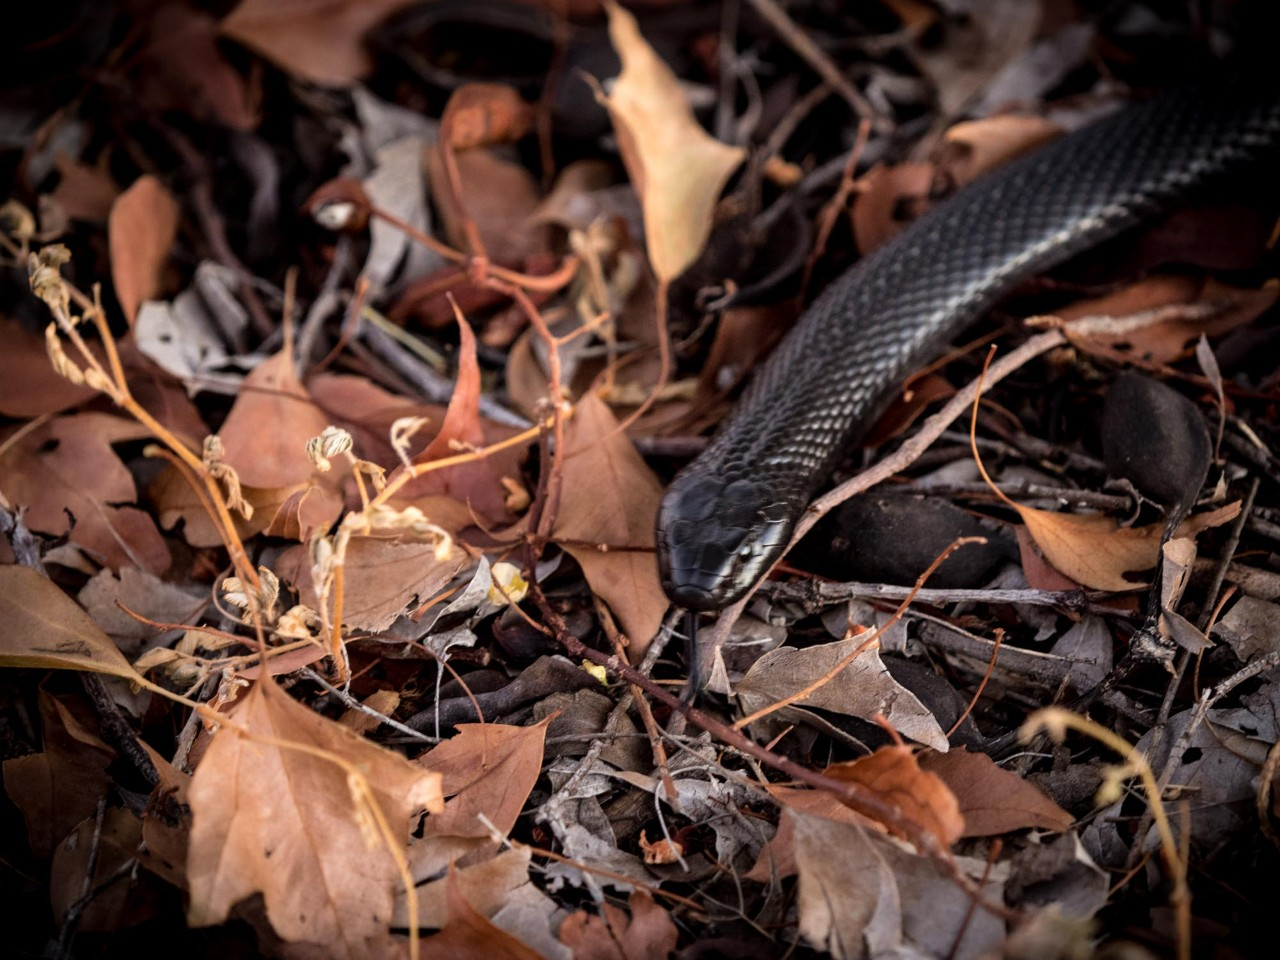 A snake slithering over dried leaves.